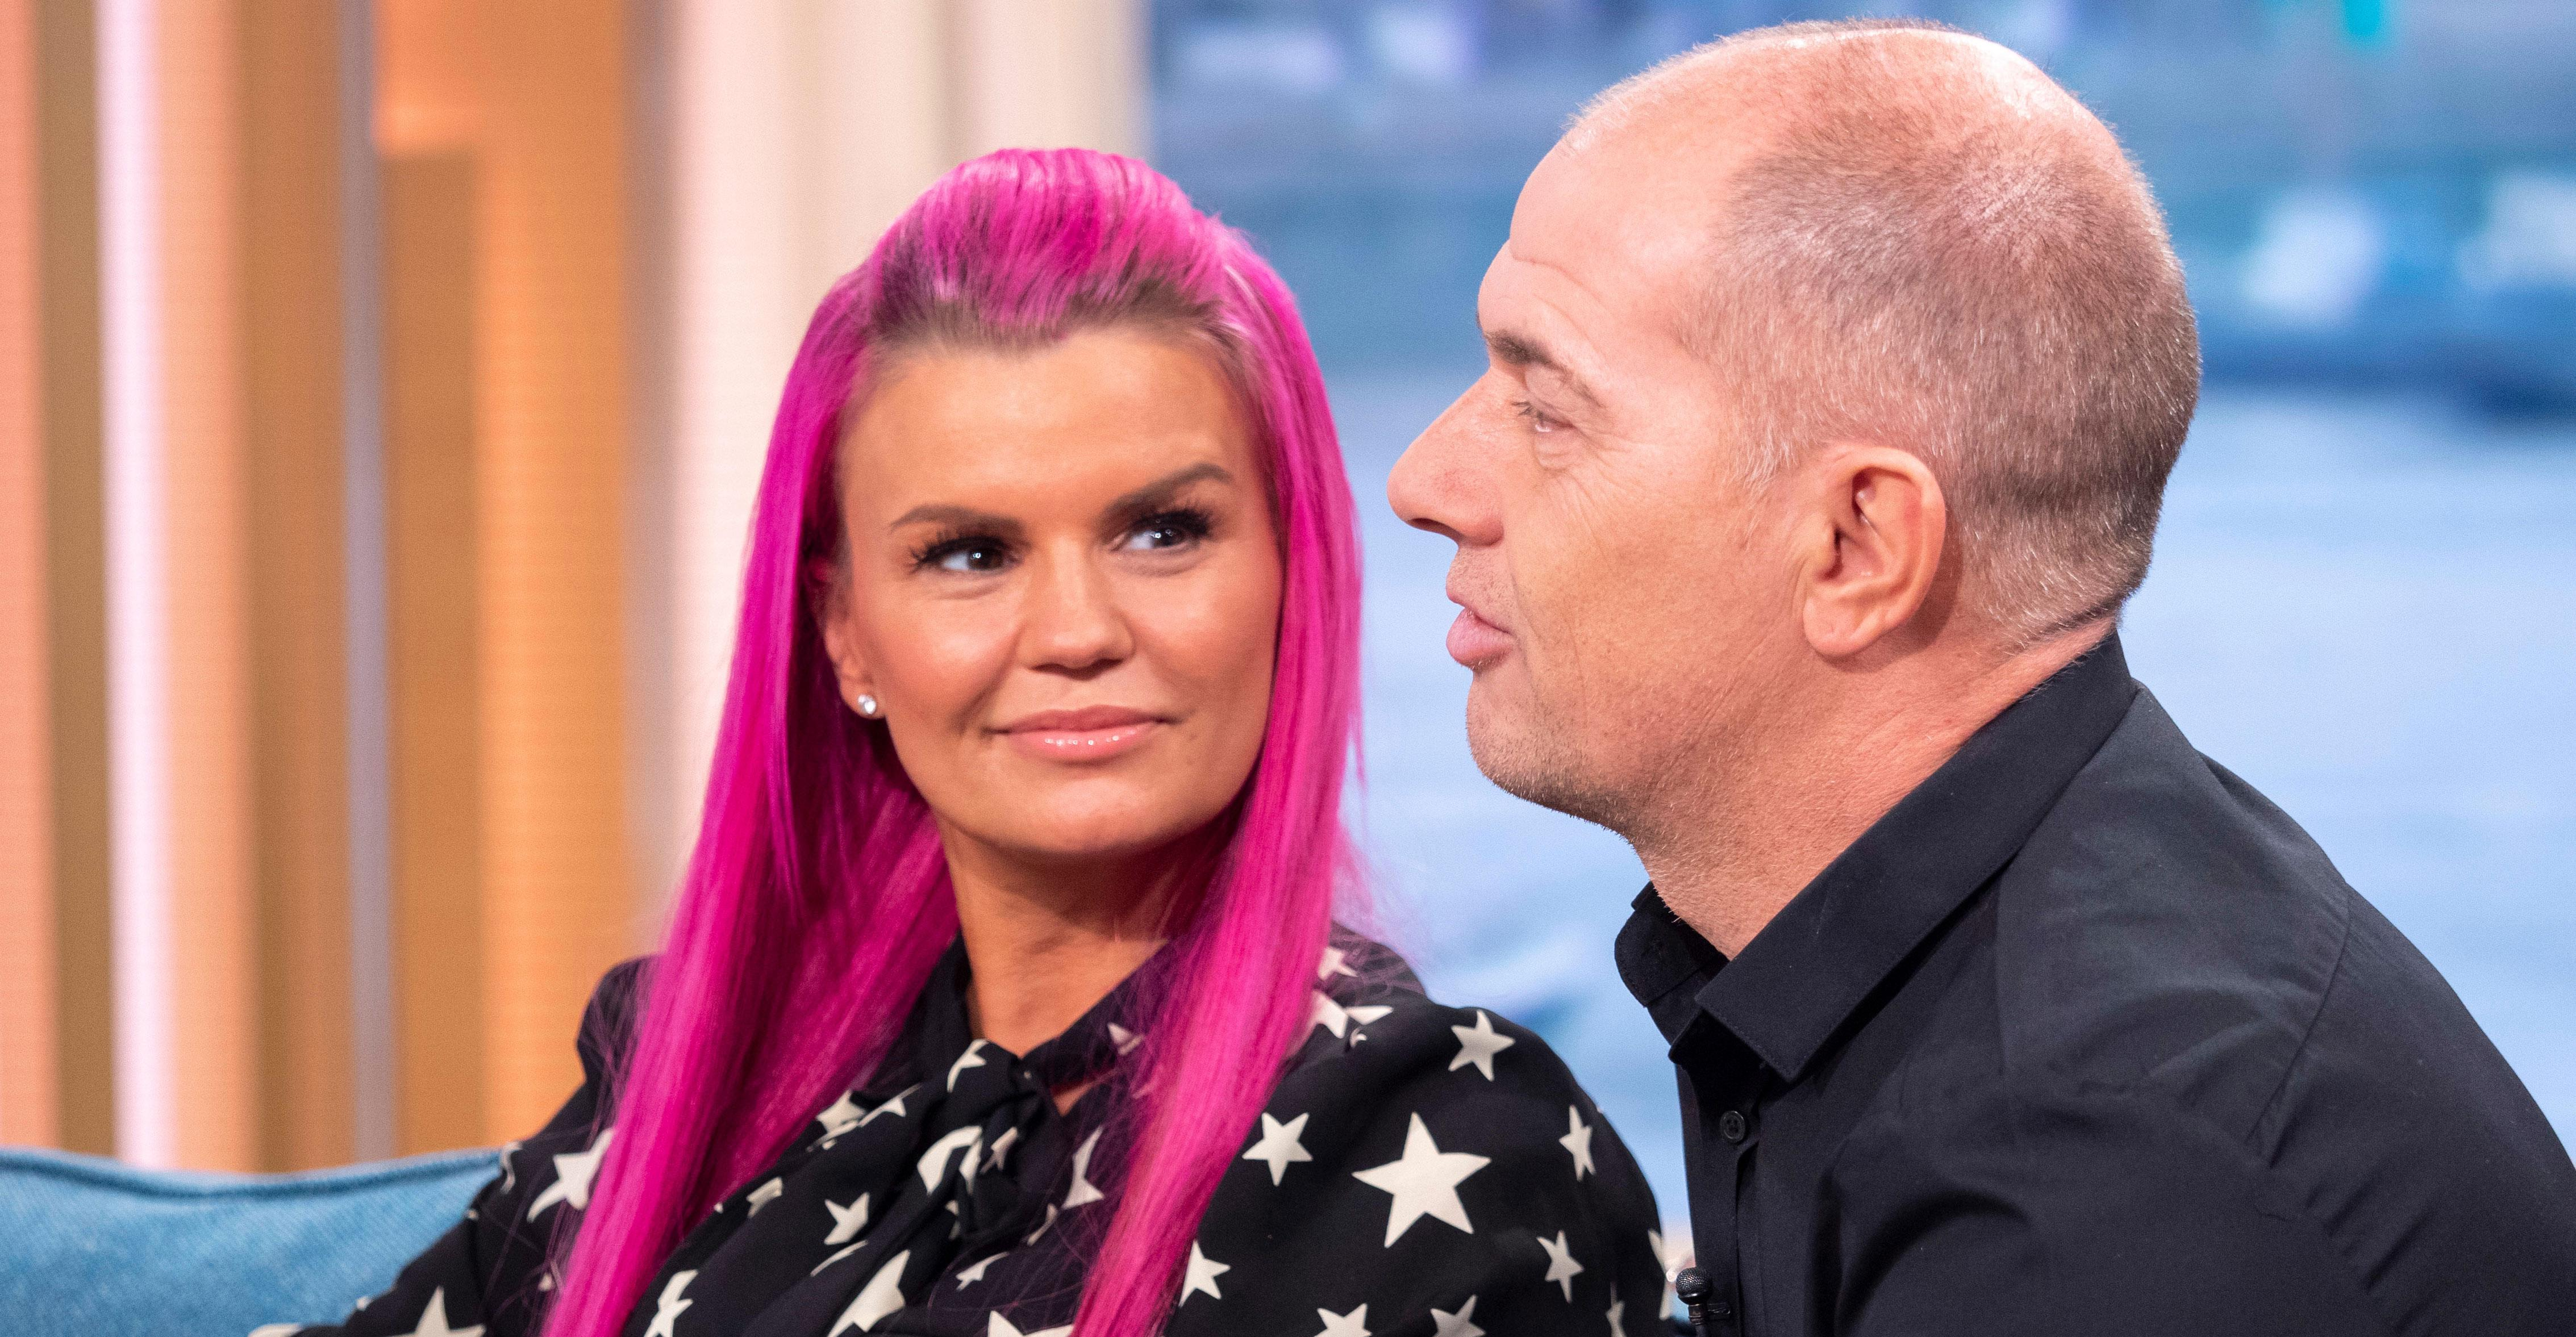 Kerry Katona Blames Her 'downfall' On Lack Of Father